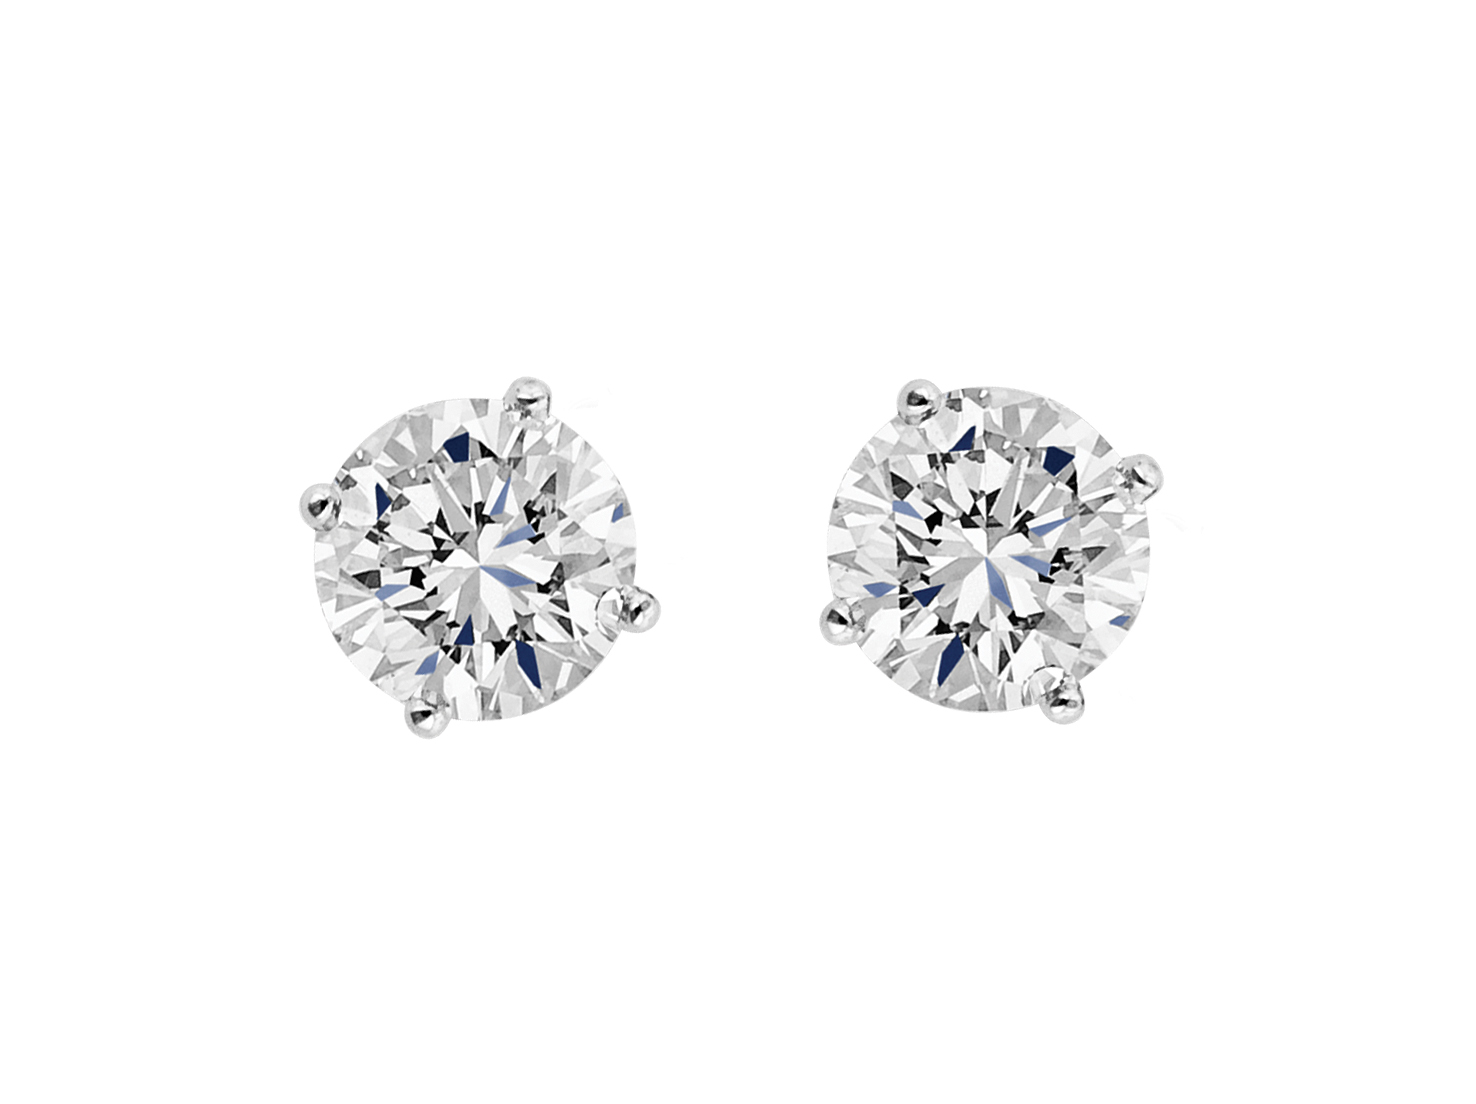 Round brilliant cut diamond stud earrings in platinum.                                                              Available at $395 and up.